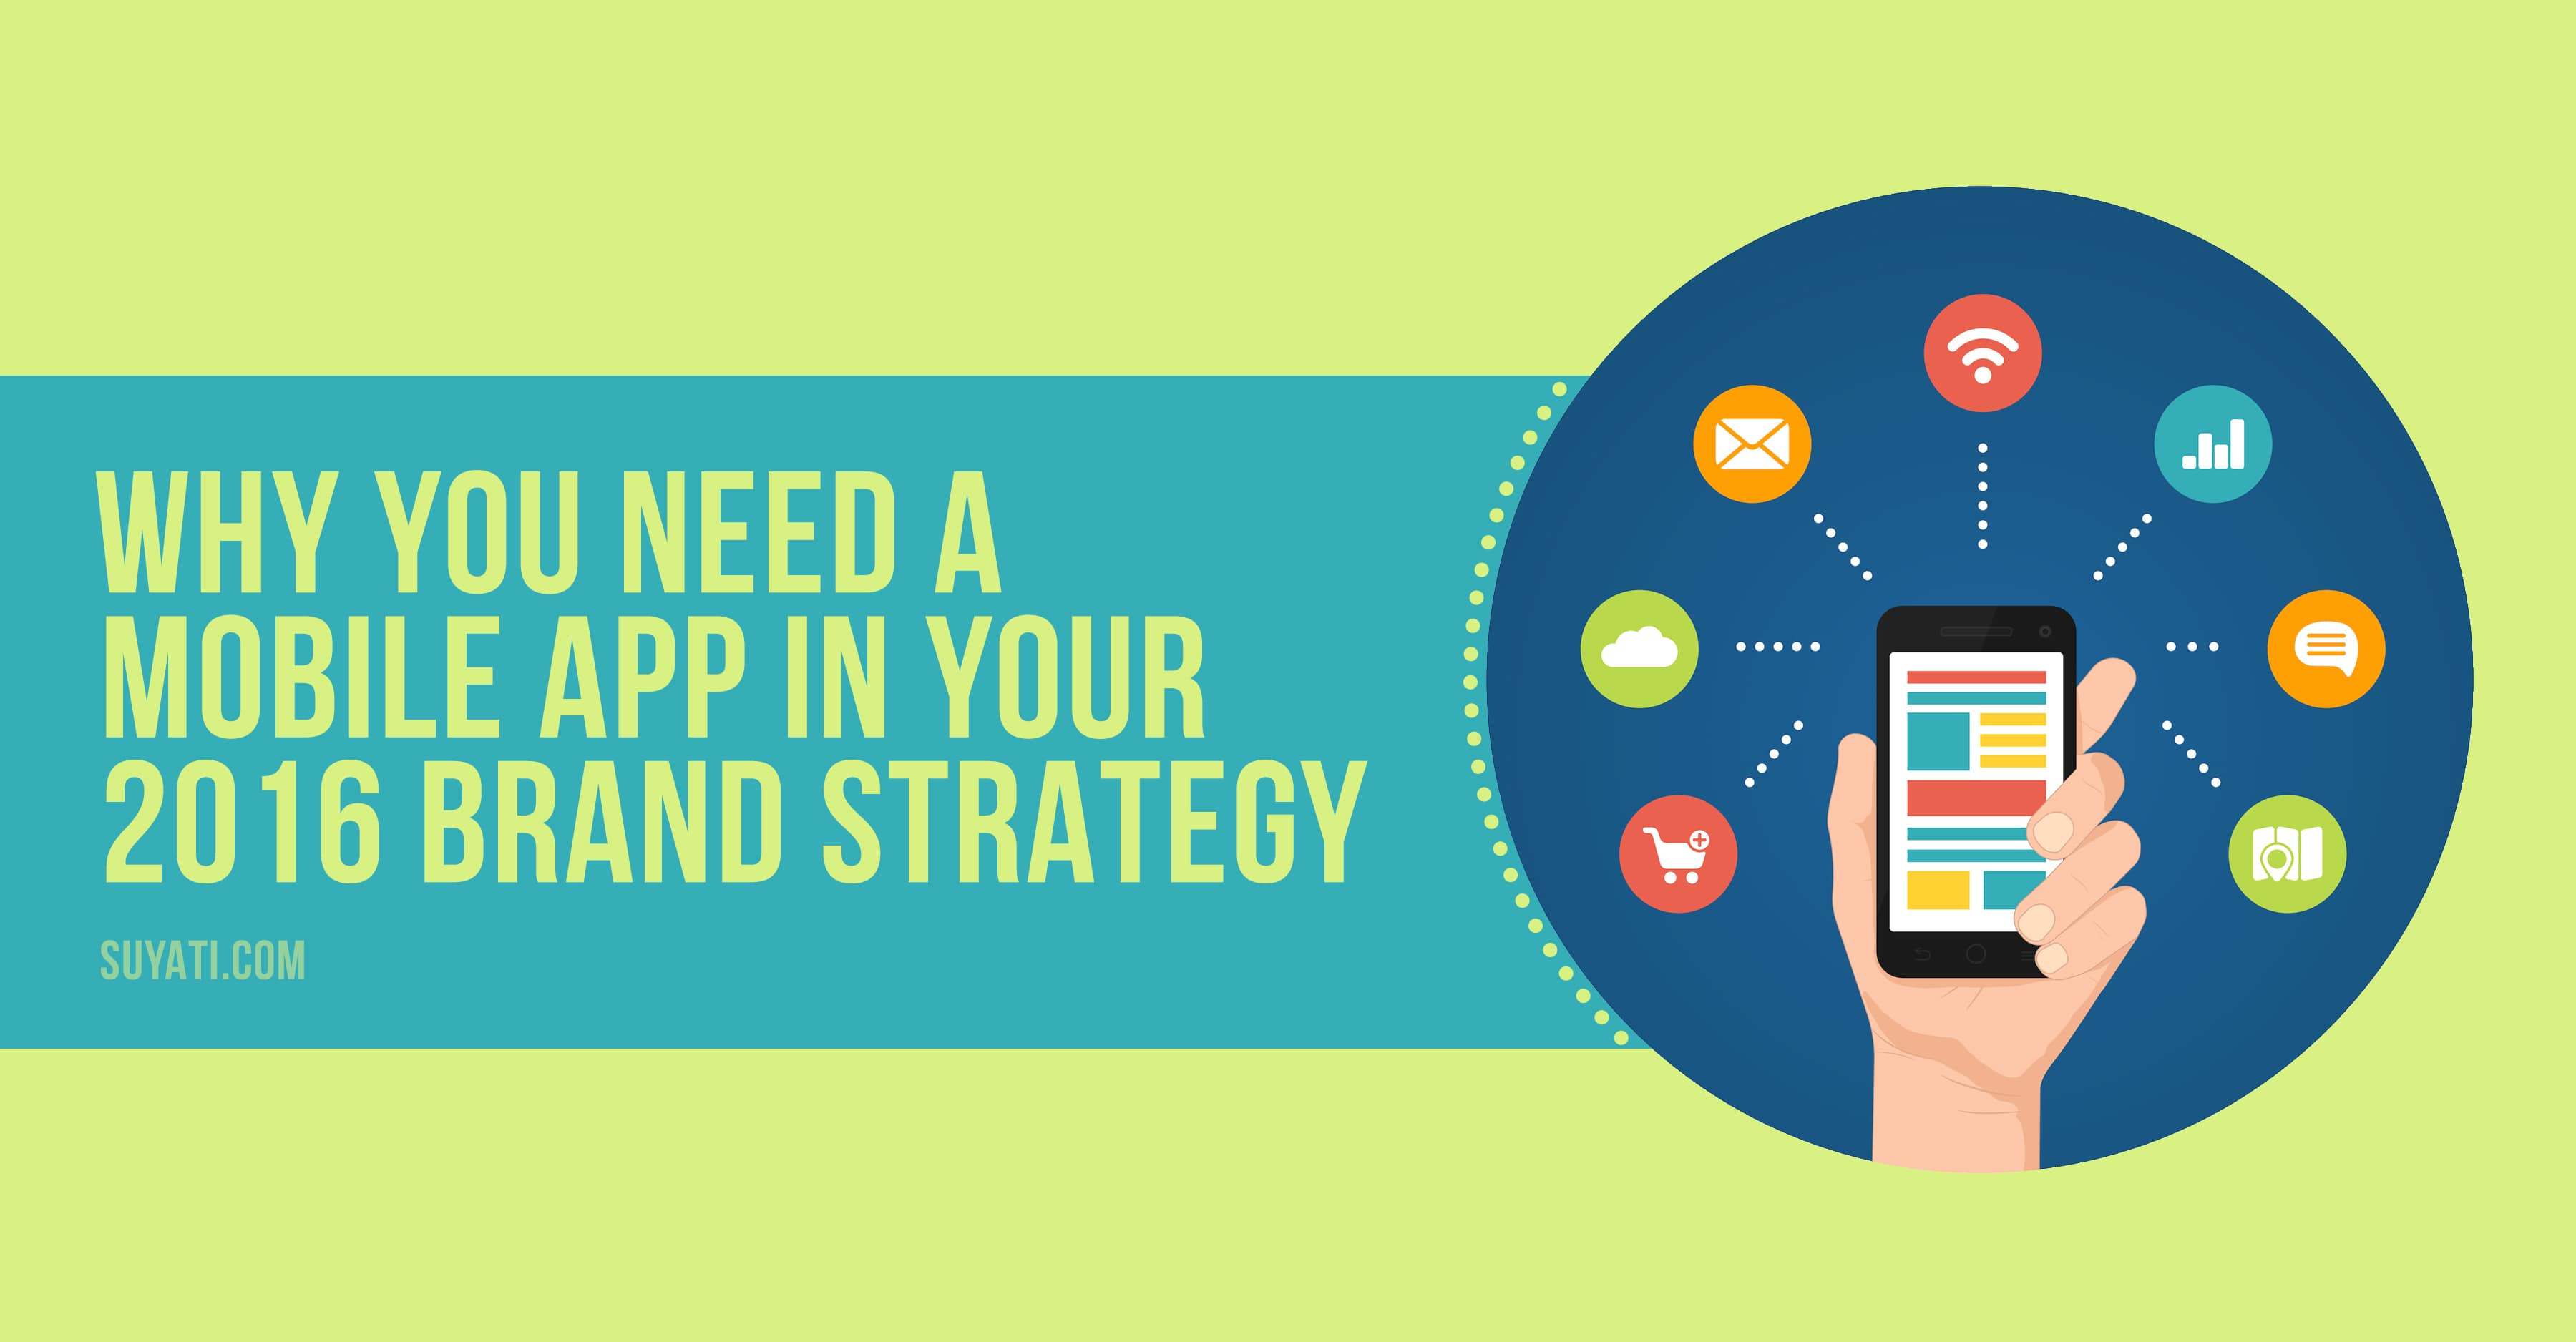 mobile app in your 2016 brand strategy